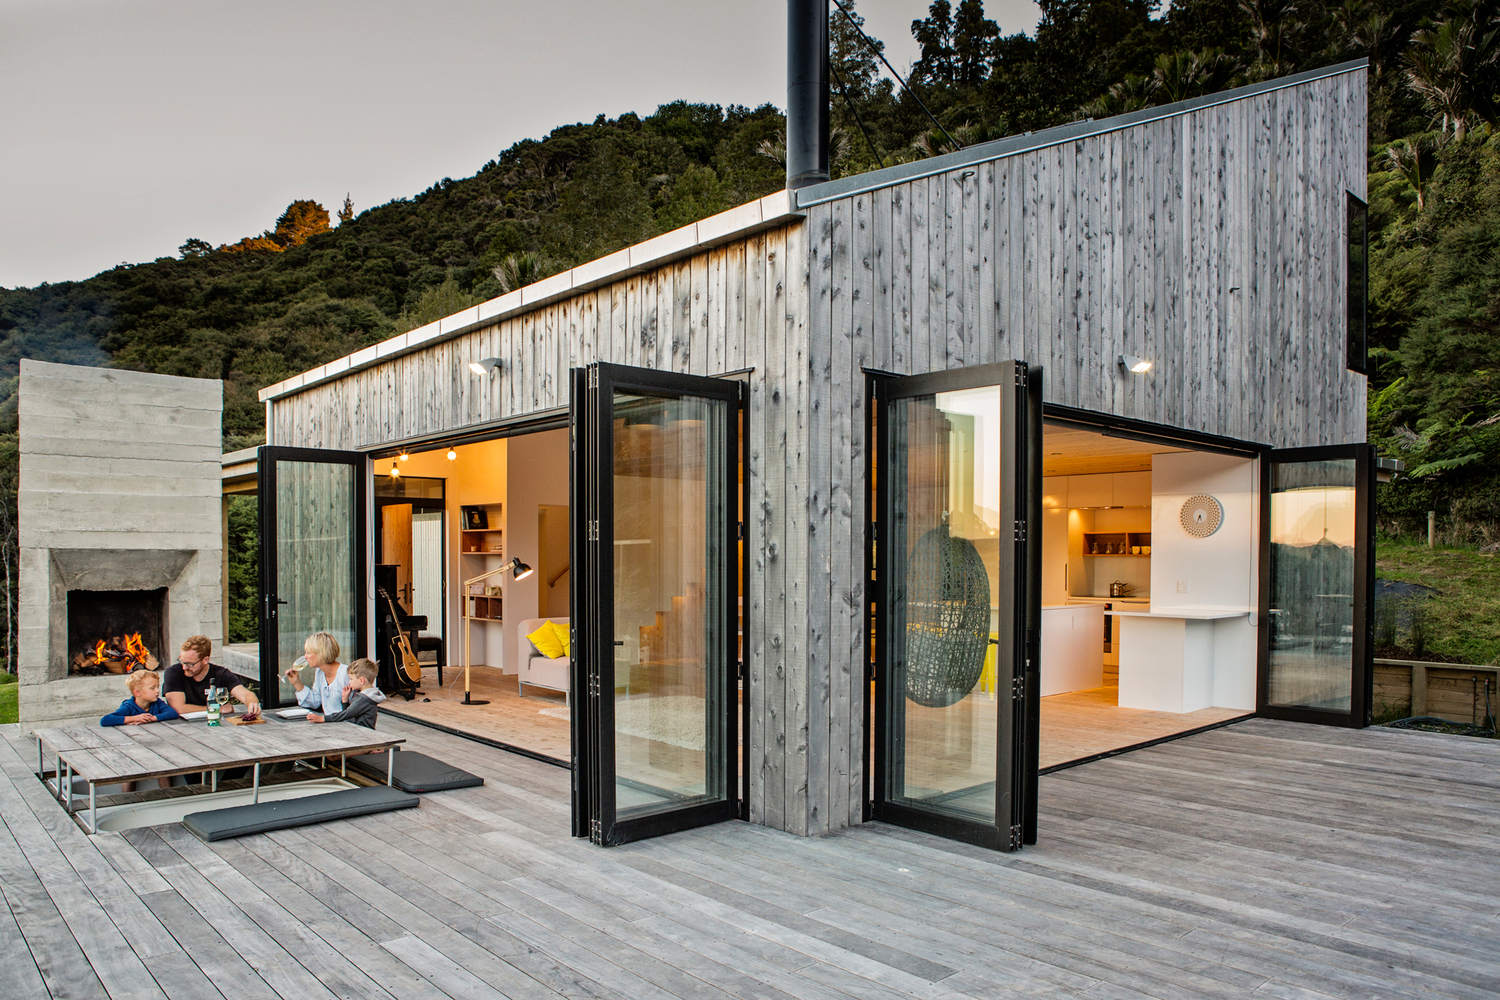 A Home Built Around Connection With Each Other and With the Landscape